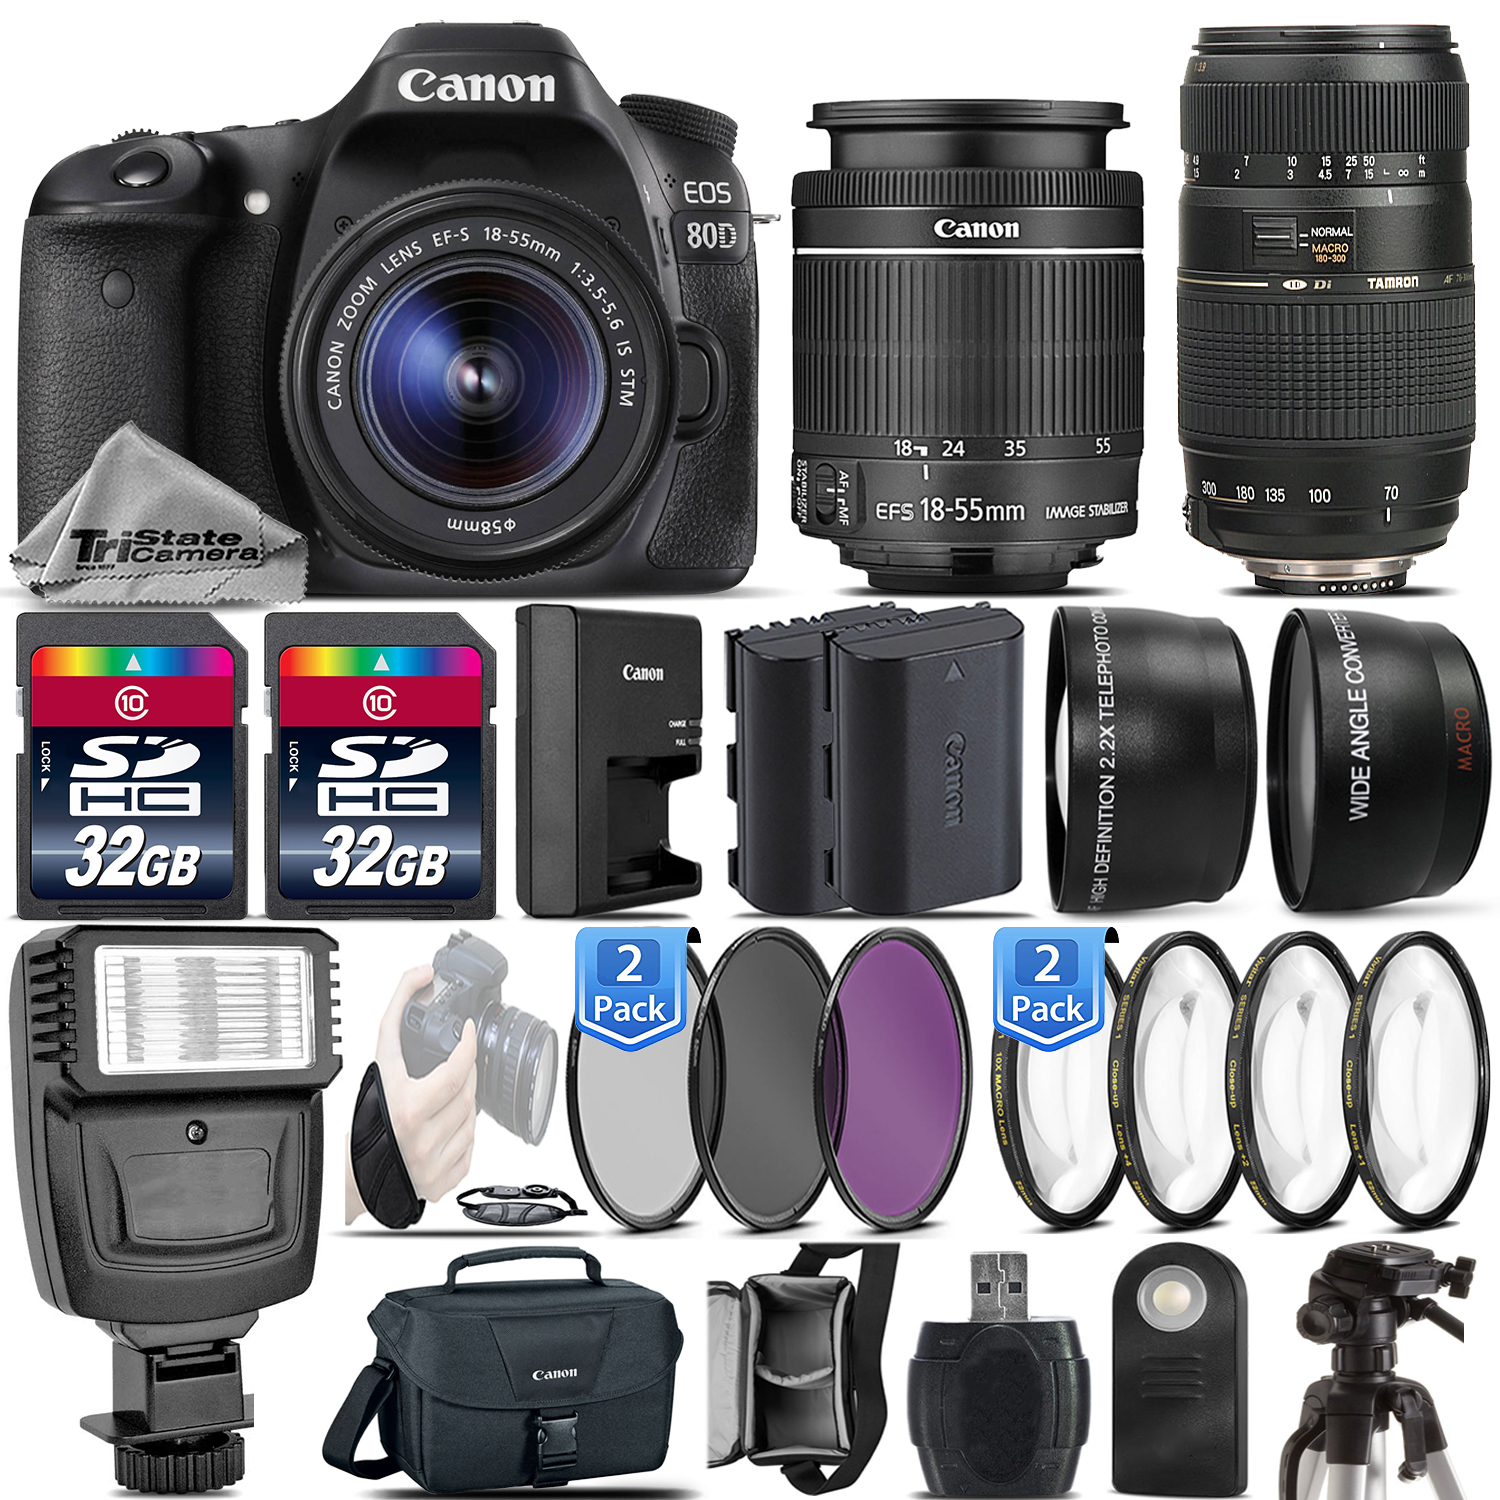 EOS 80D DSLR Camera + 18-55mm IS STM + 70-300mm + Flash - 64GB Kit Bundle *FREE SHIPPING*